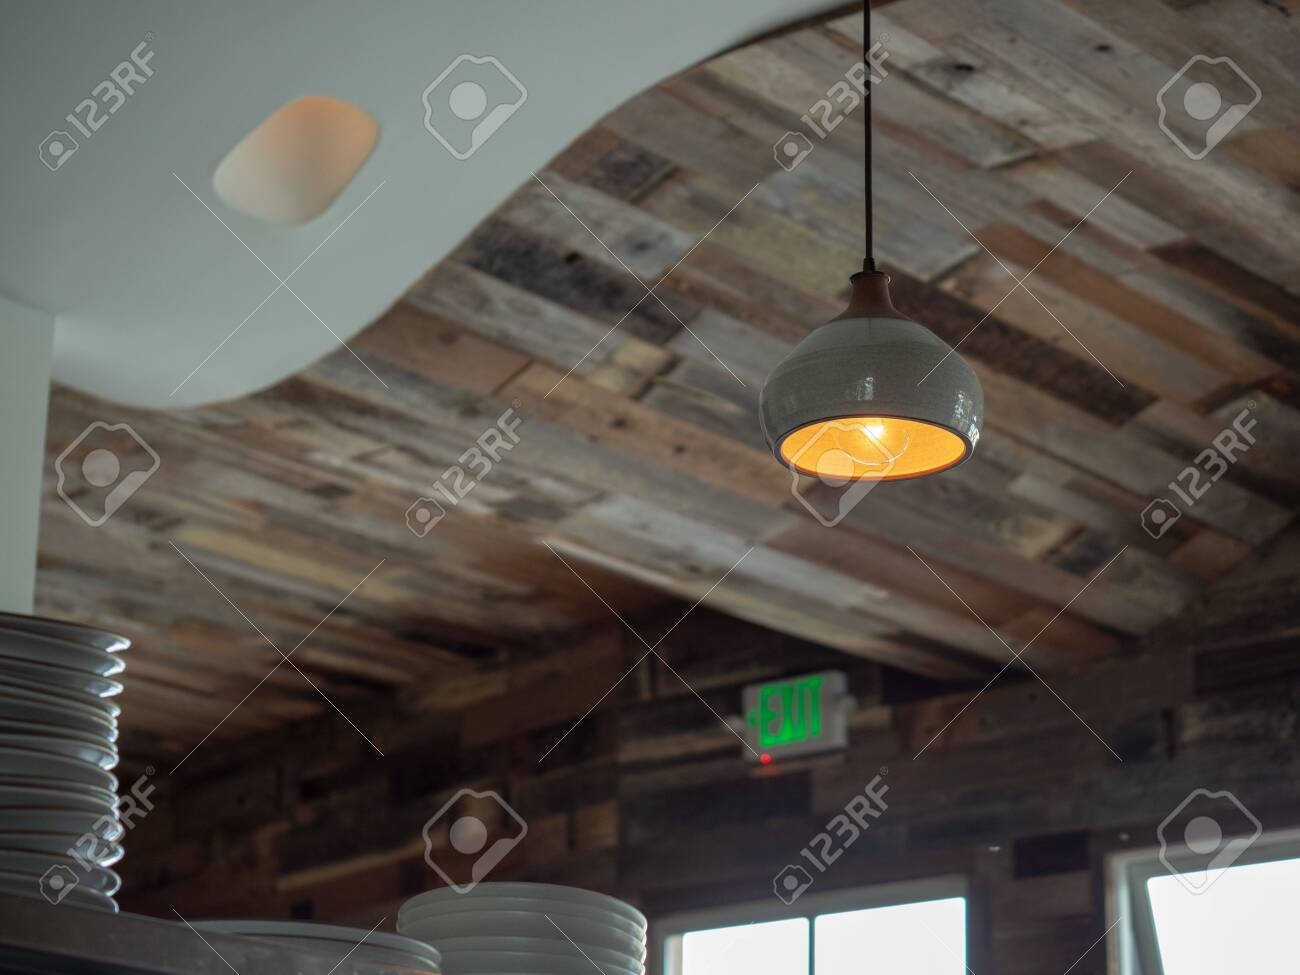 Wooden Roof Of Trendy Restaurant With Hanging Lights And Stack Stock Photo Picture And Royalty Free Image Image 113645935